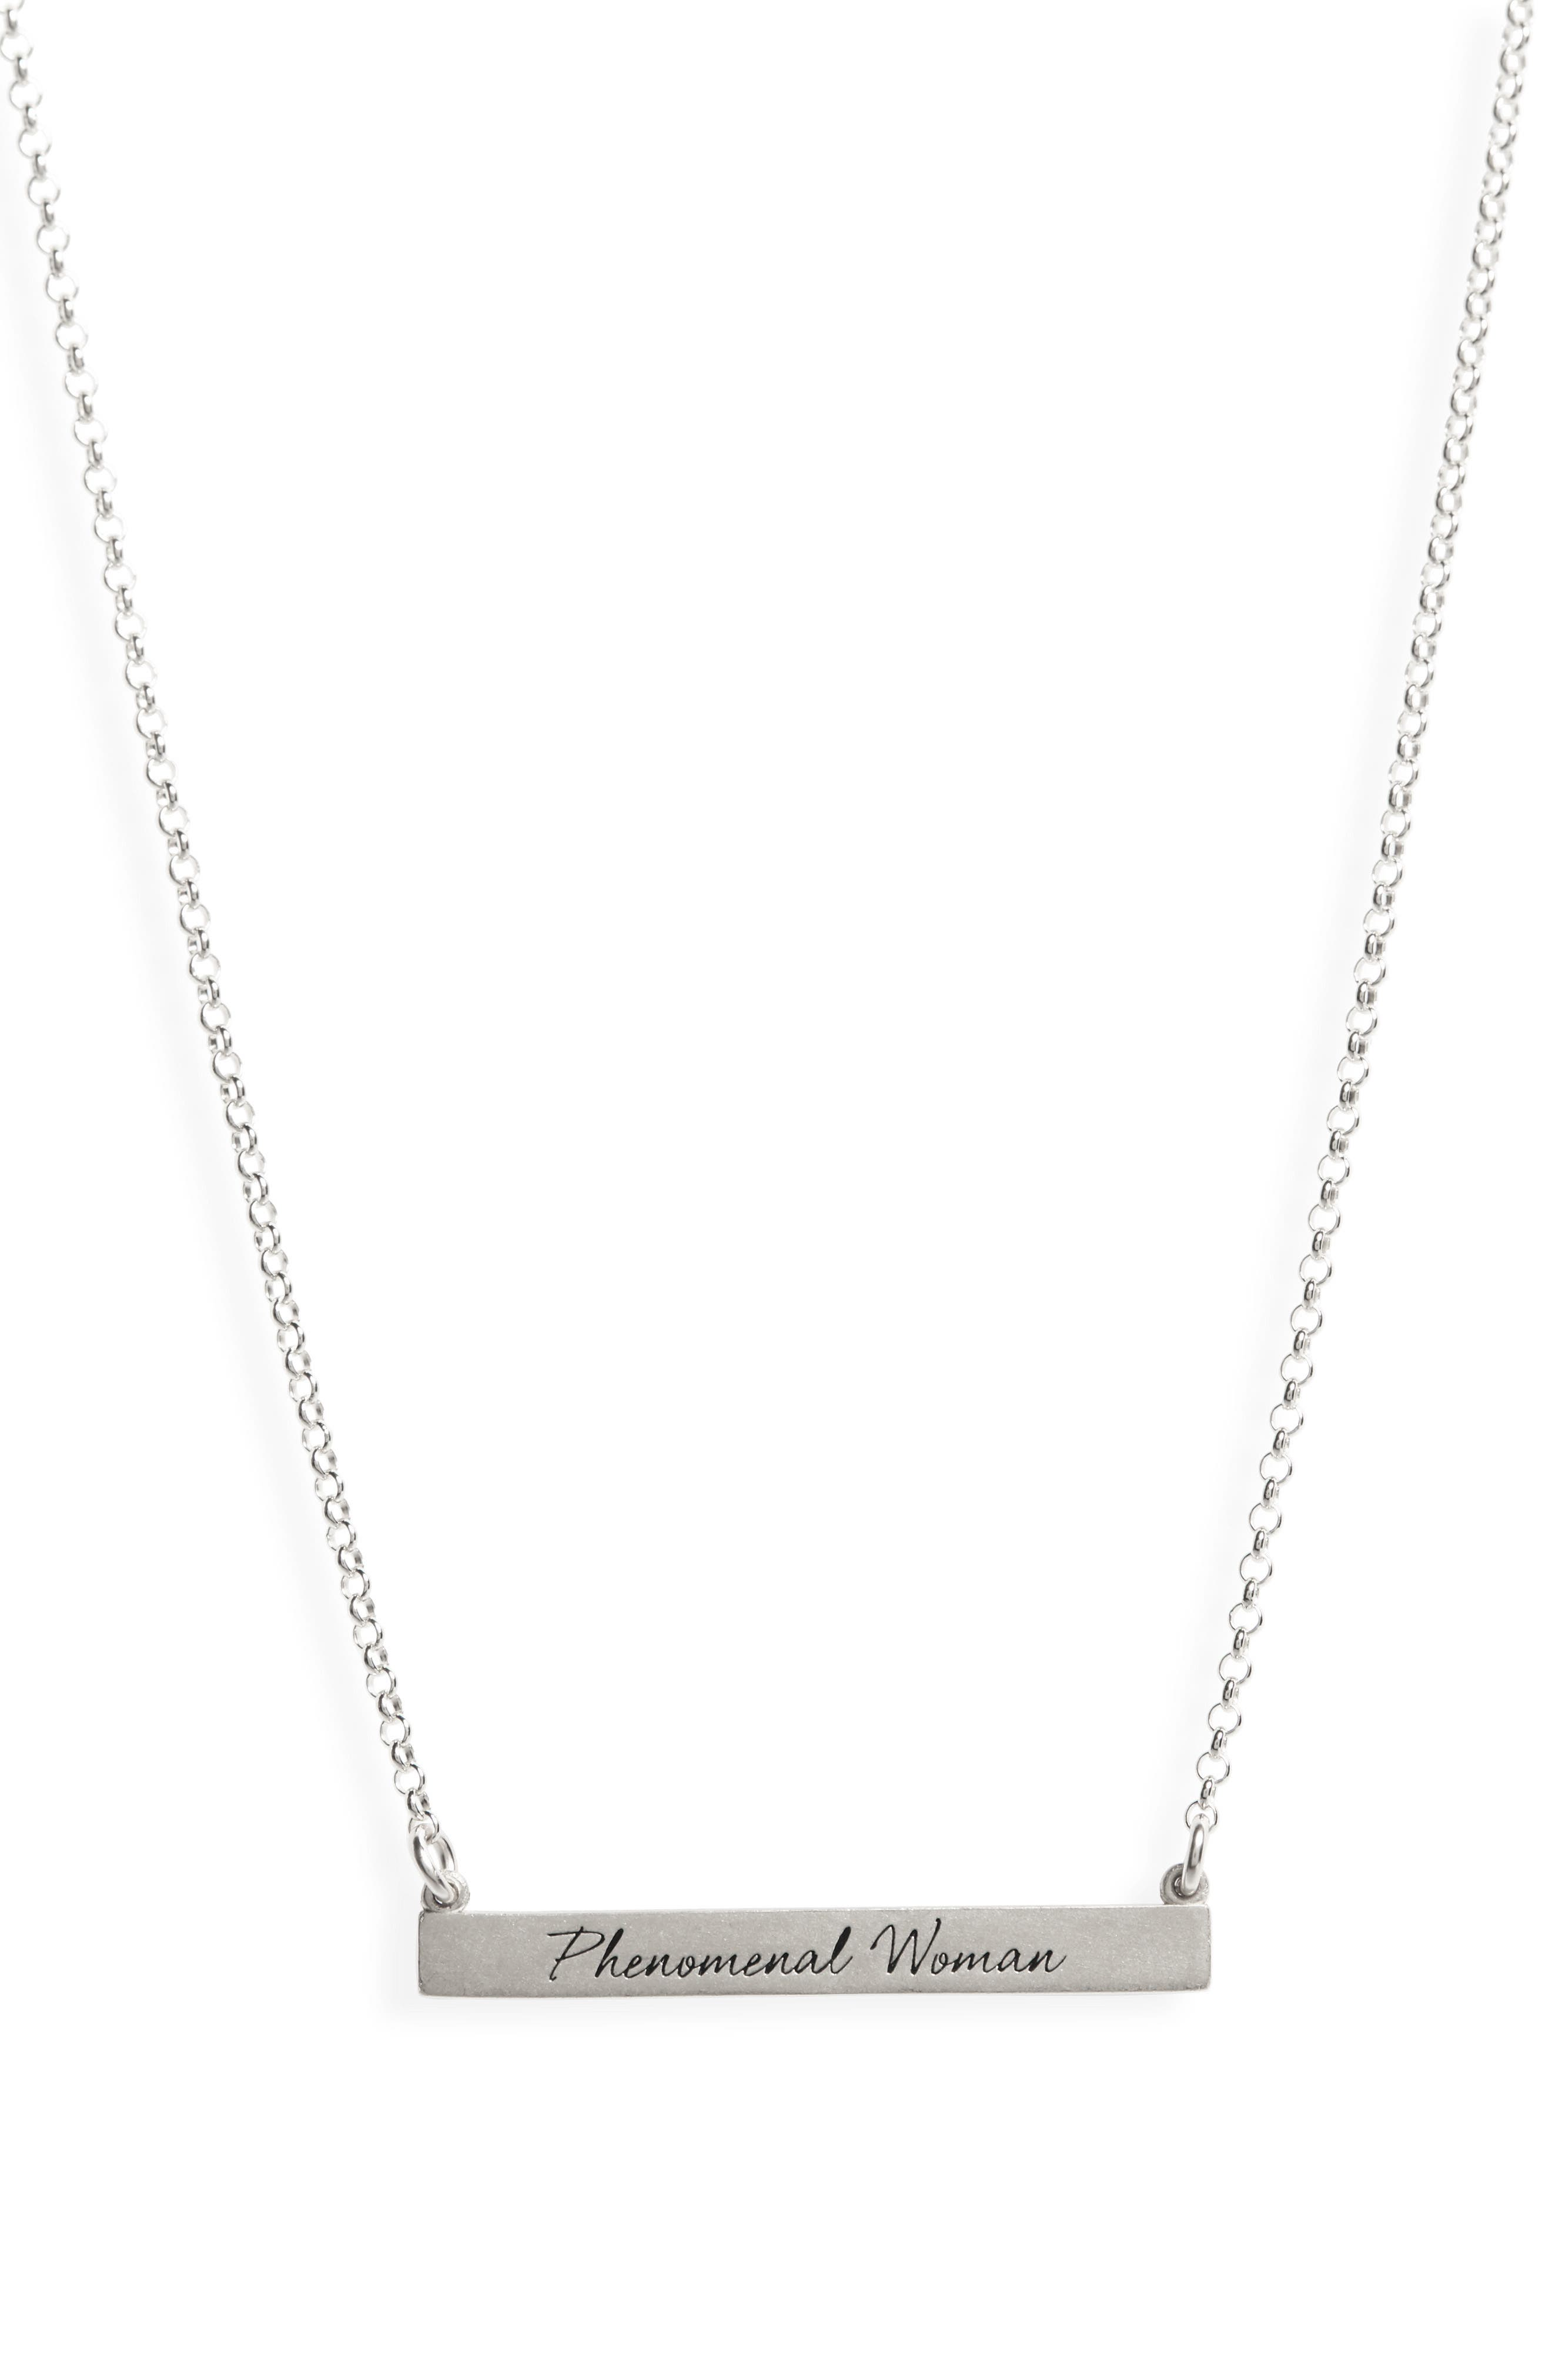 Legacy Collection - Phenomenal Women Bar Necklace,                             Alternate thumbnail 3, color,                             040